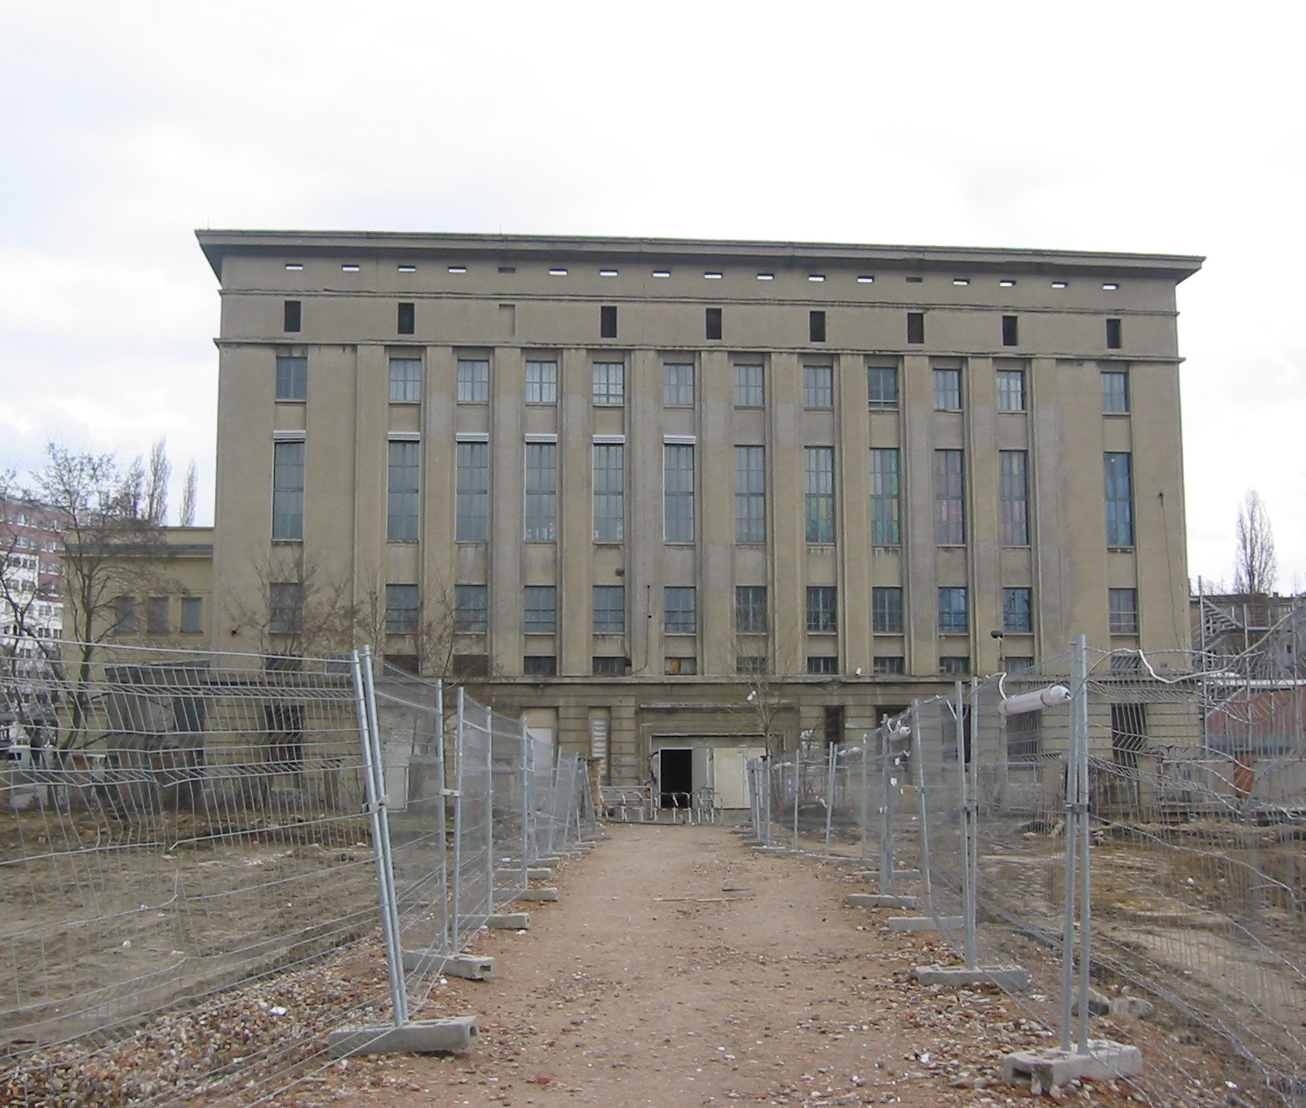 Berghain viewed from the street, from Wikimedia Commons